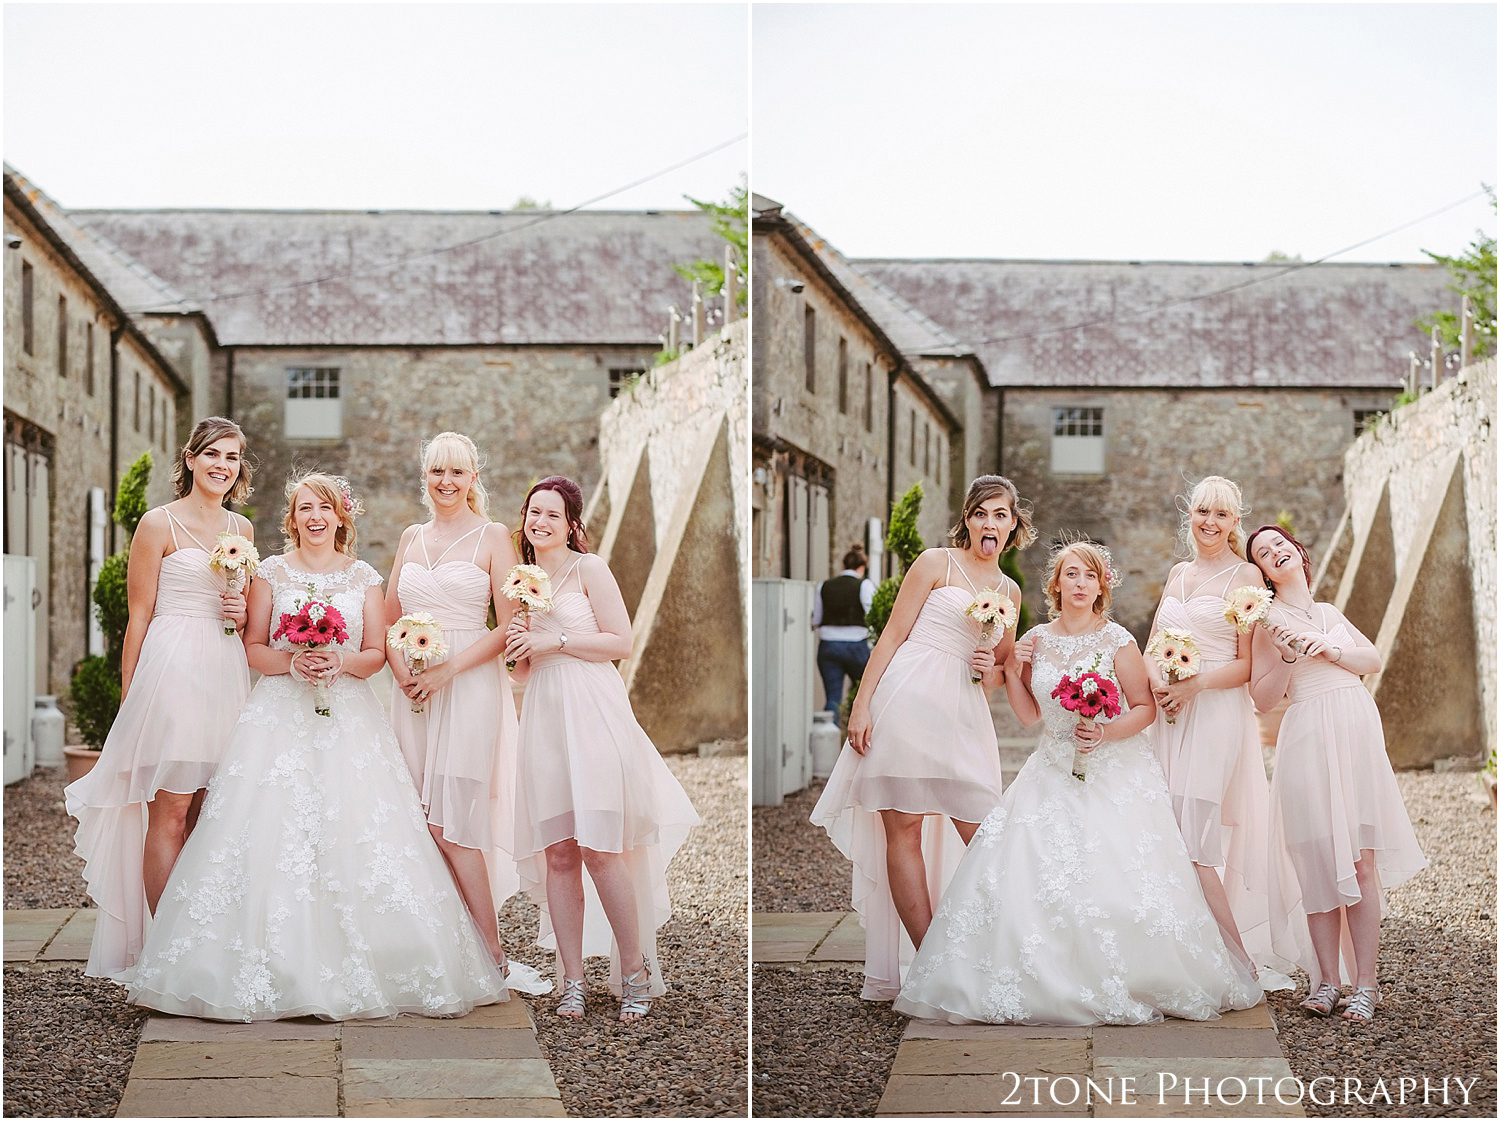 Doxford barns wedding photographer 045.jpg